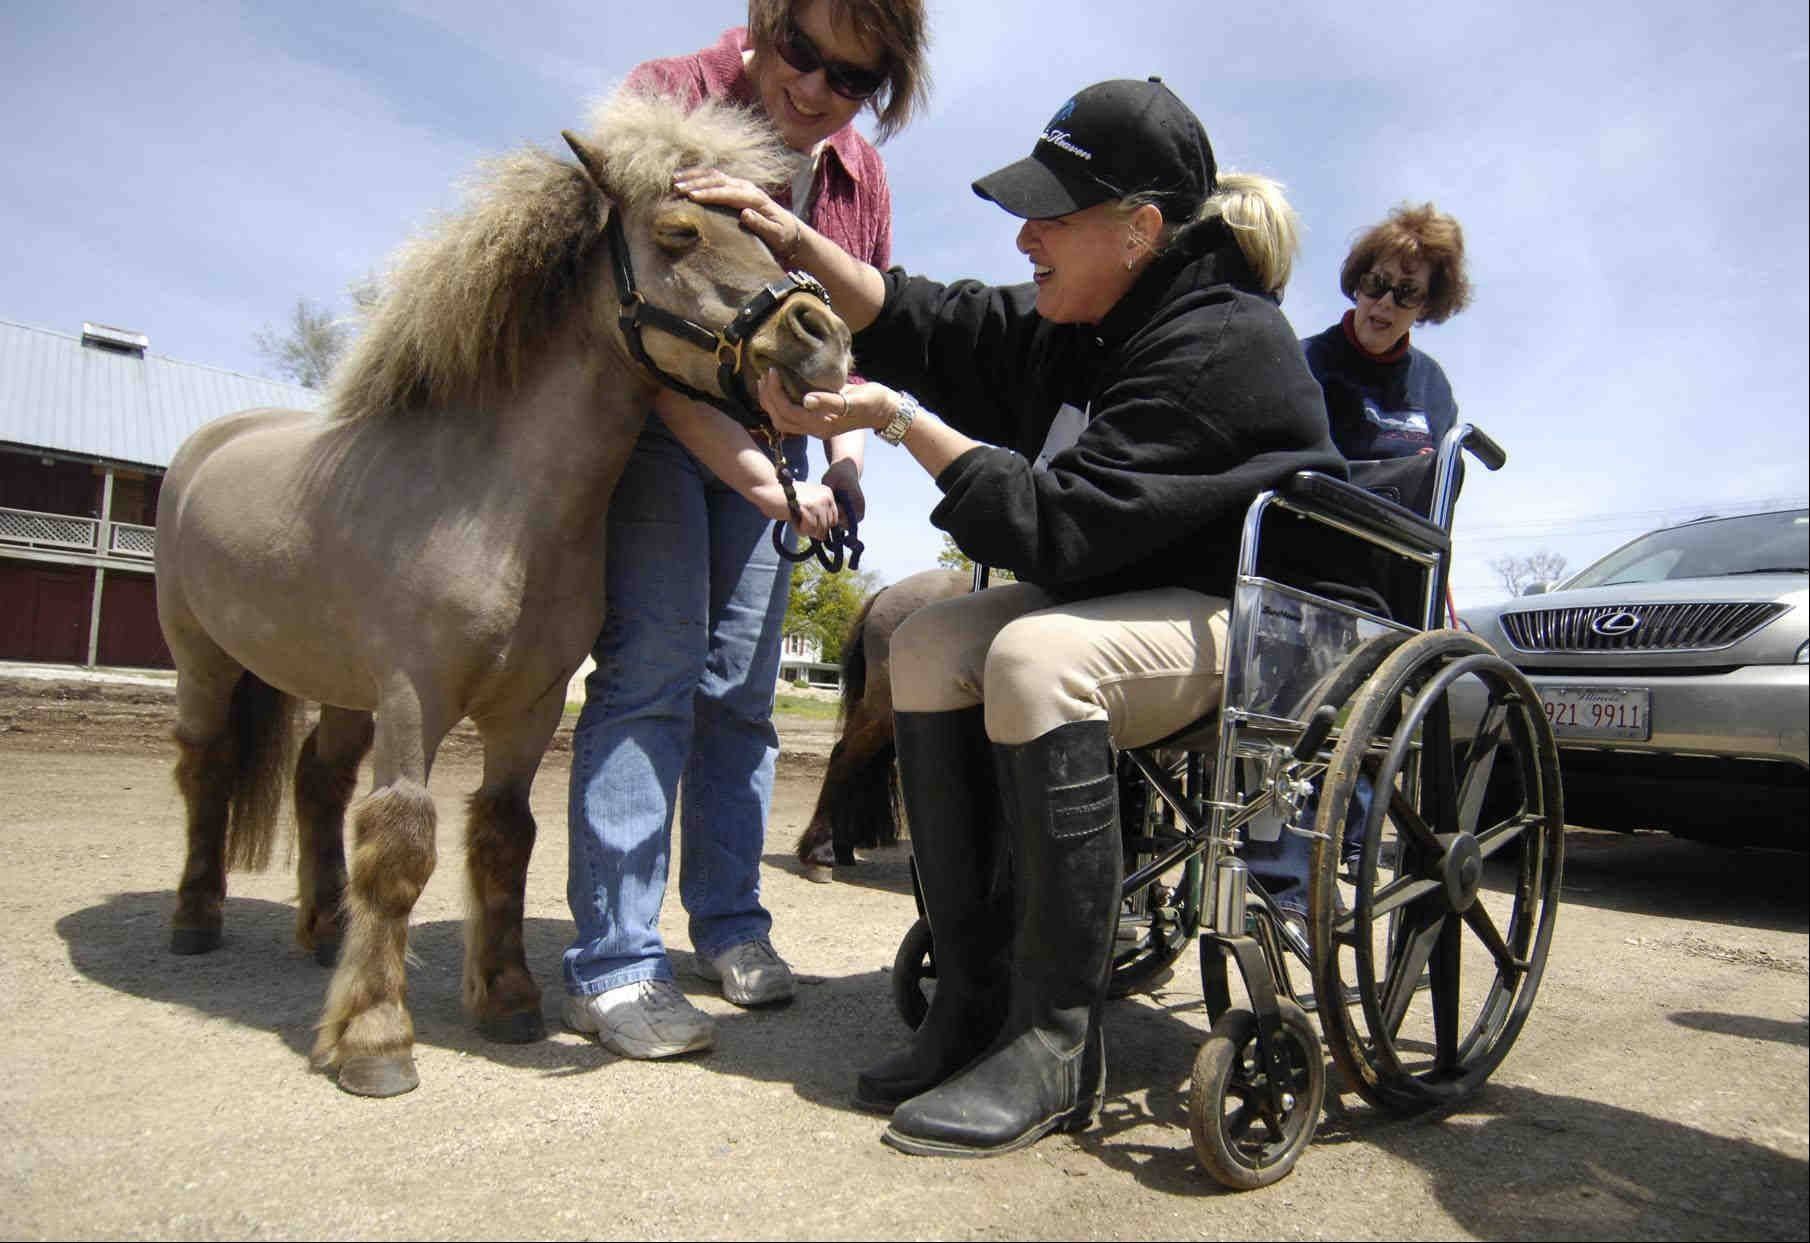 Jodie Diegel approaches Lunar, the oldest mare of the group, in a wheelchair to desensitize the horse. Its natural reaction would be to bolt, so desensitizing is important for the safety of the animals, handlers and the people they are visiting. Lunar is one of four miniature horses at Mane In Heaven pet therapy organization.